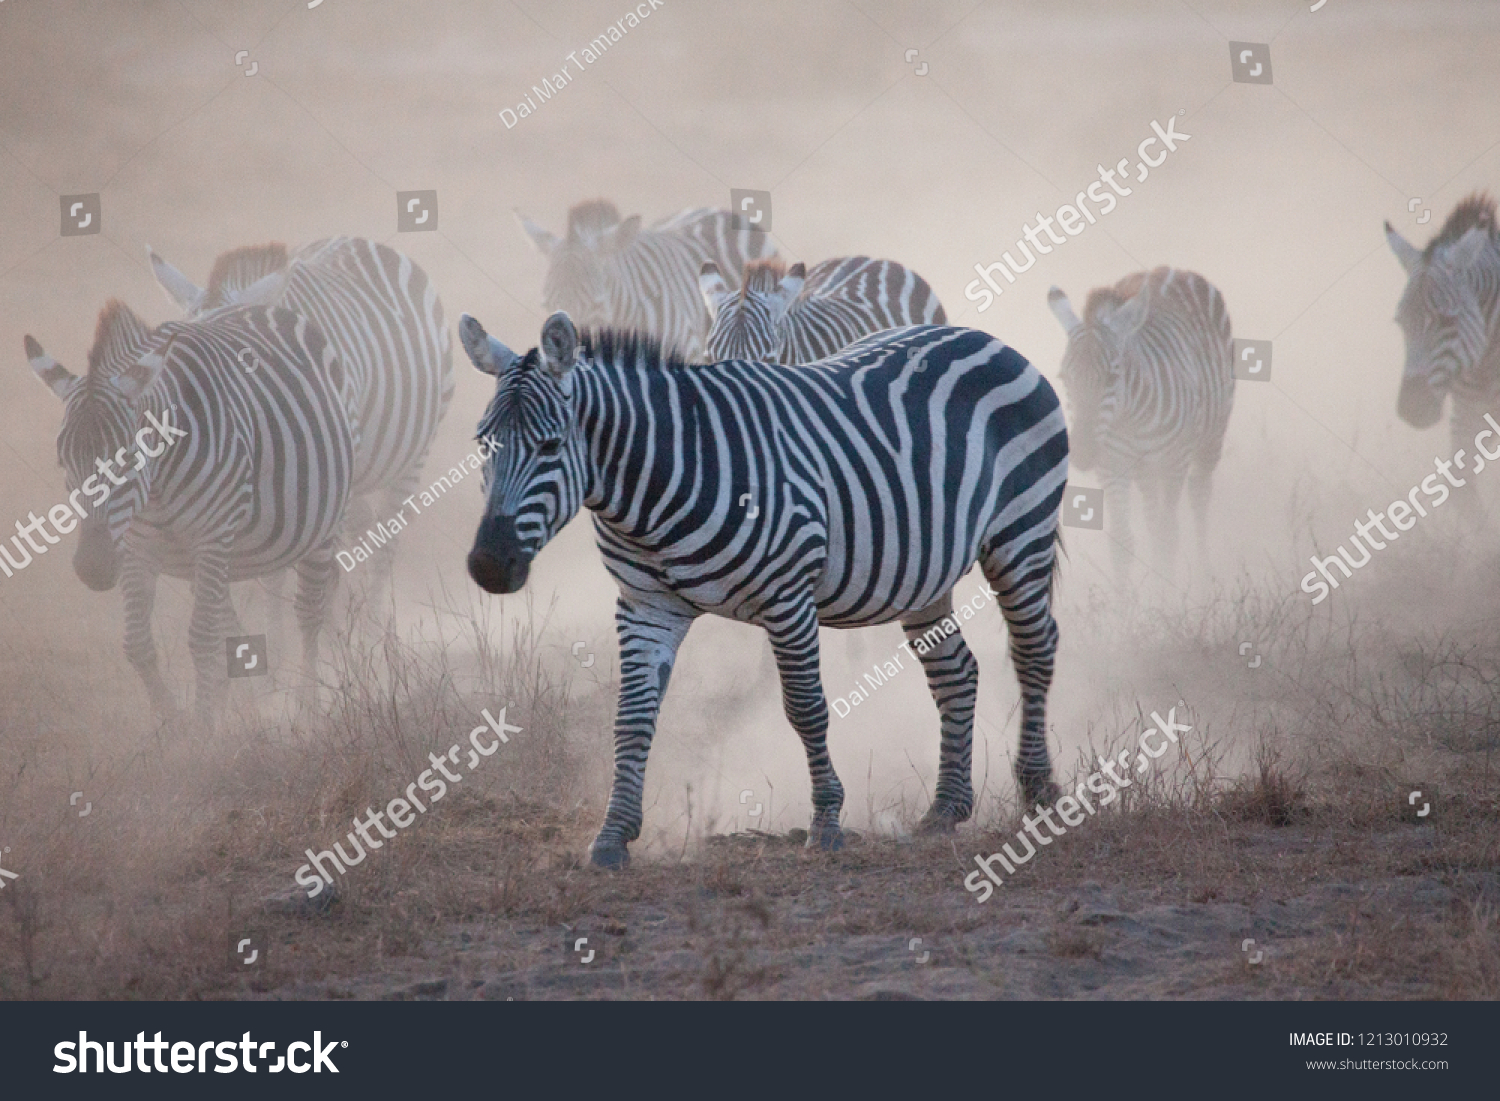 Zebras and Wildebeests Emerging from a Dust Cloud in Africa #1213010932